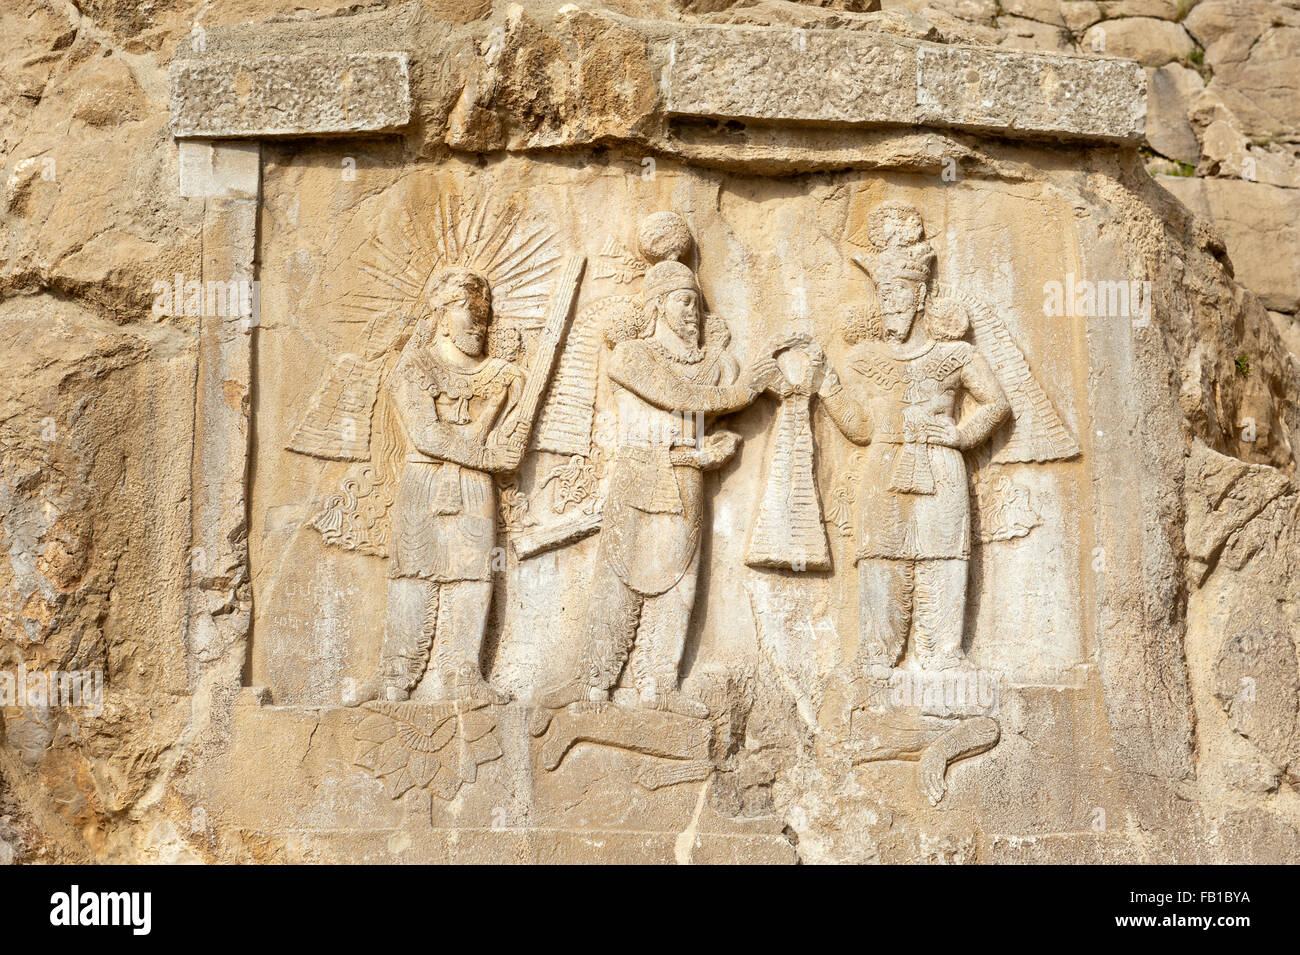 Rock relief from the Sassanid Empire, coronation ceremony, investiture, God Mithras, Persian ruler King Ardashir - Stock Image